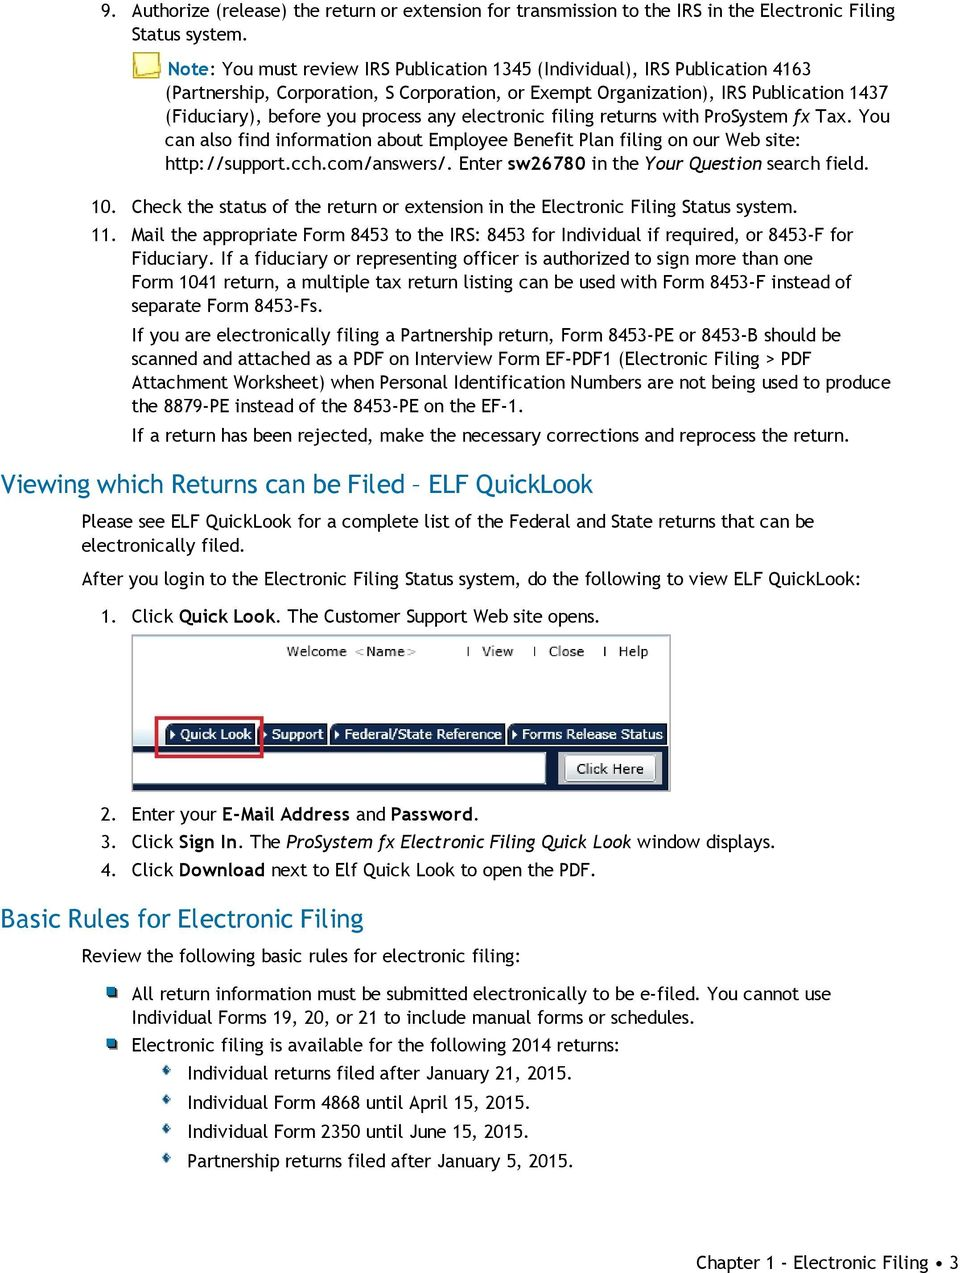 ProSystem fx Electronic Filing User Guide - PDF